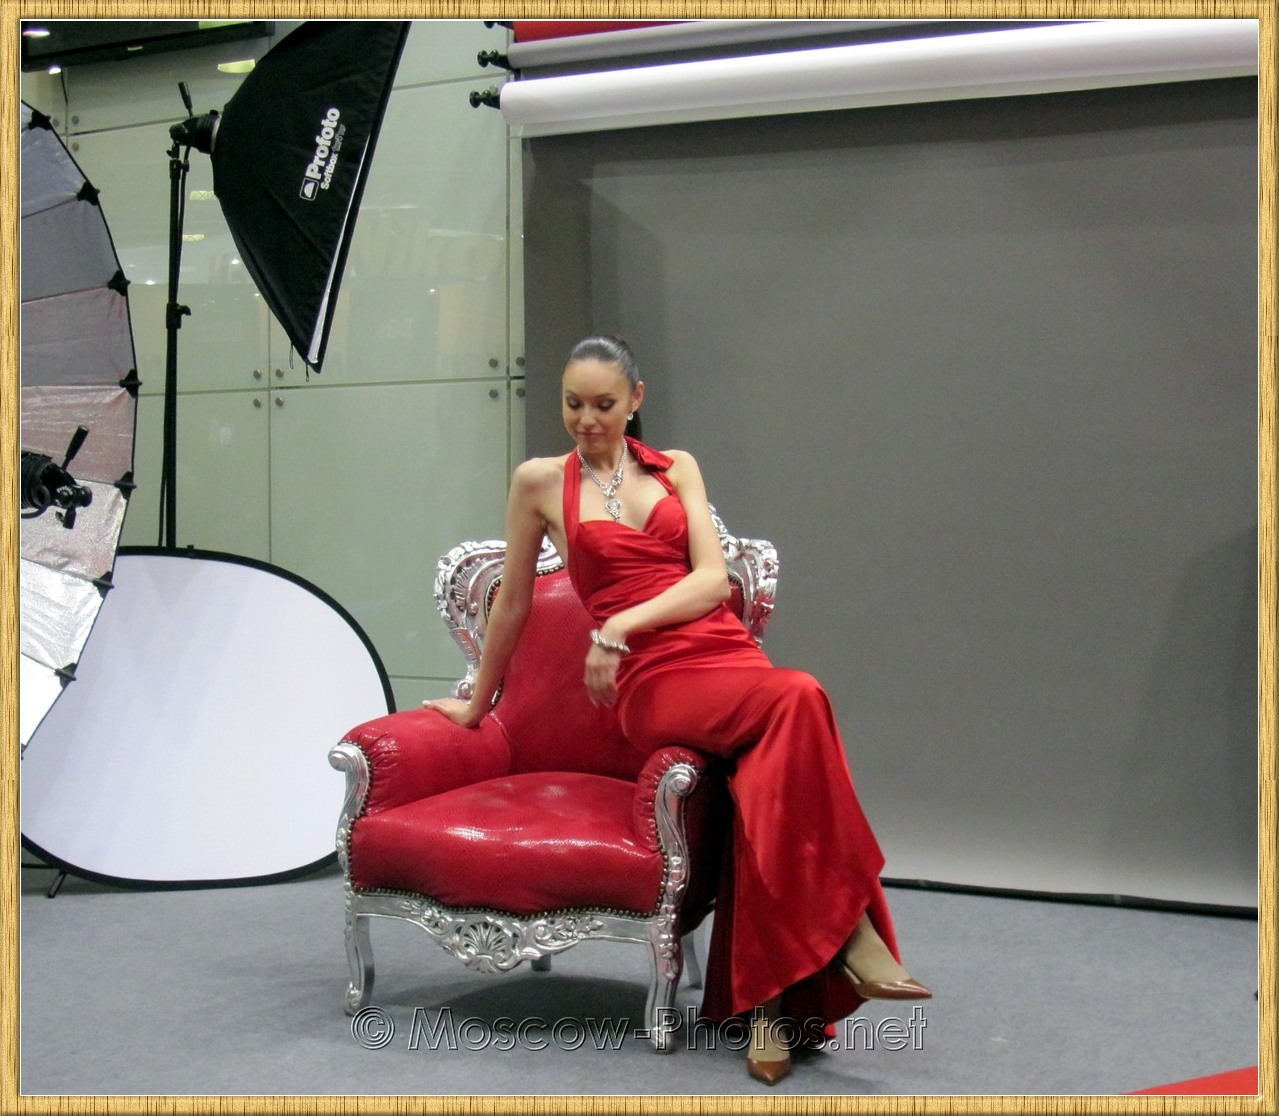 Promotional model in red dress at Photoforum